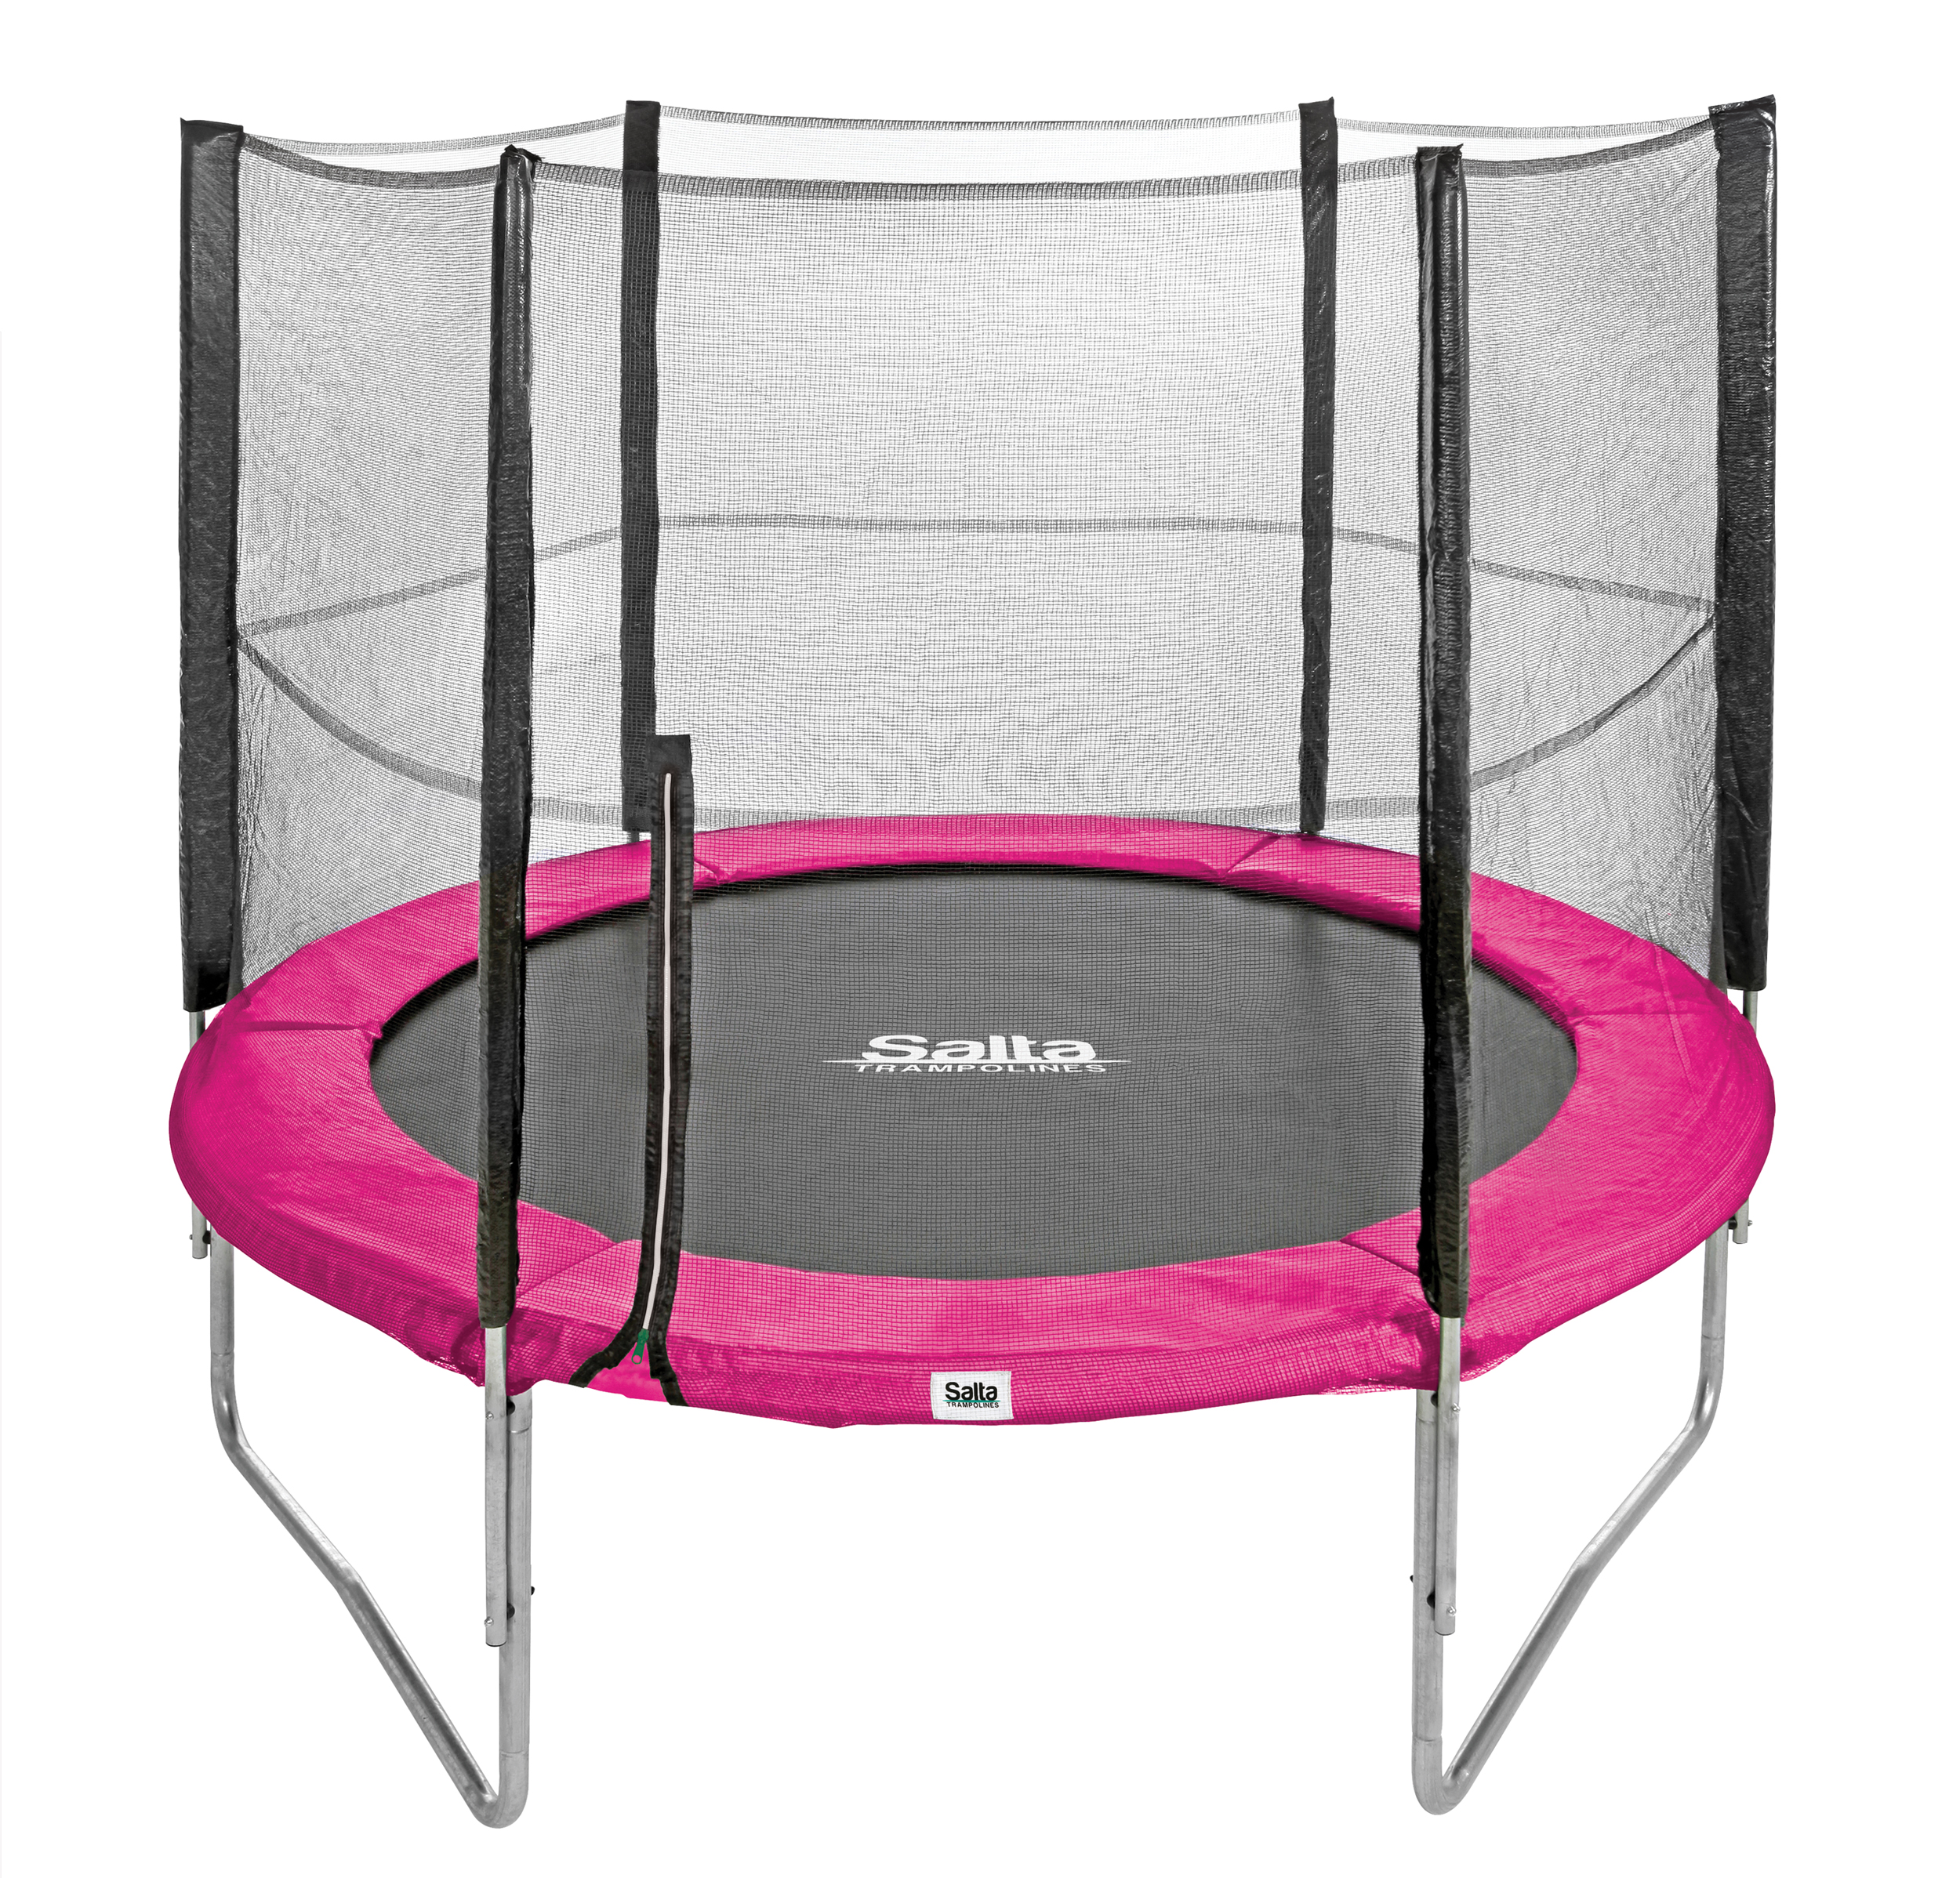 Image of   Salta 7 ft Disport Combo Trampolin runde - 213 cm - Pink